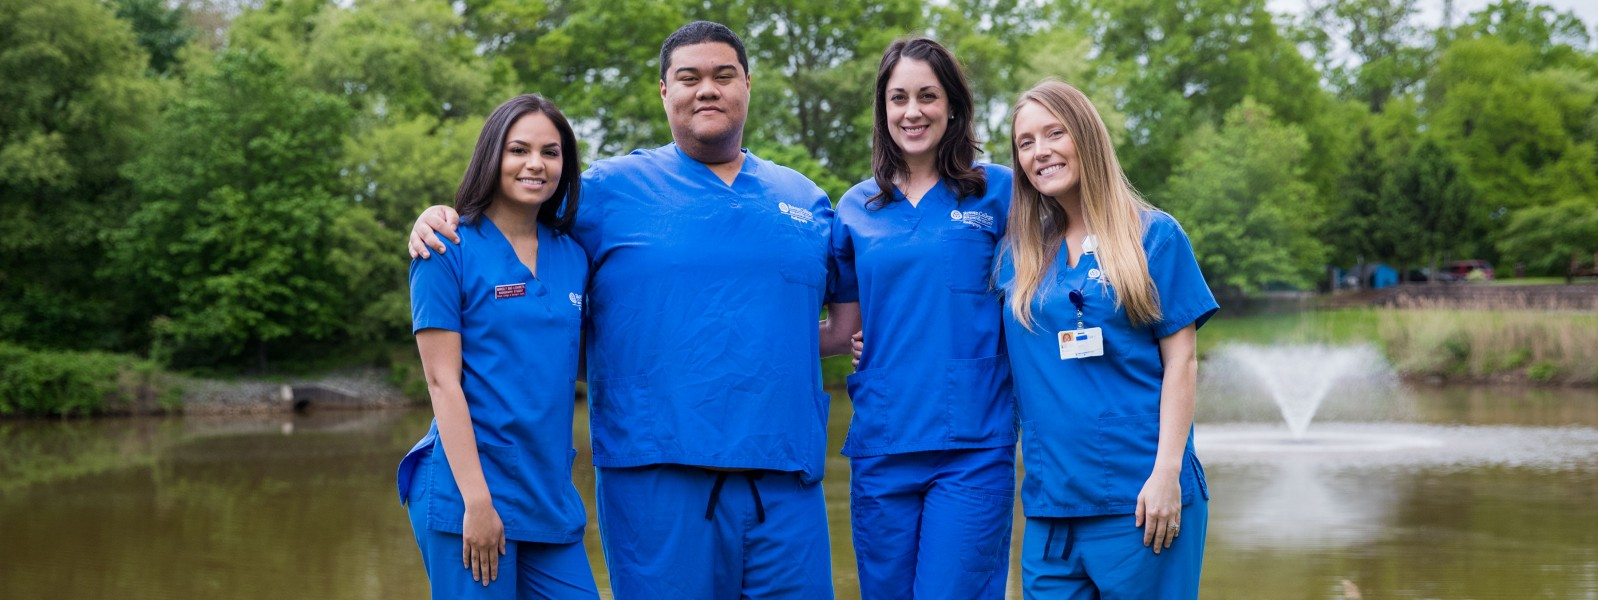 Radiography students outside of the health sciences center wearing blue RCBC scrubs.